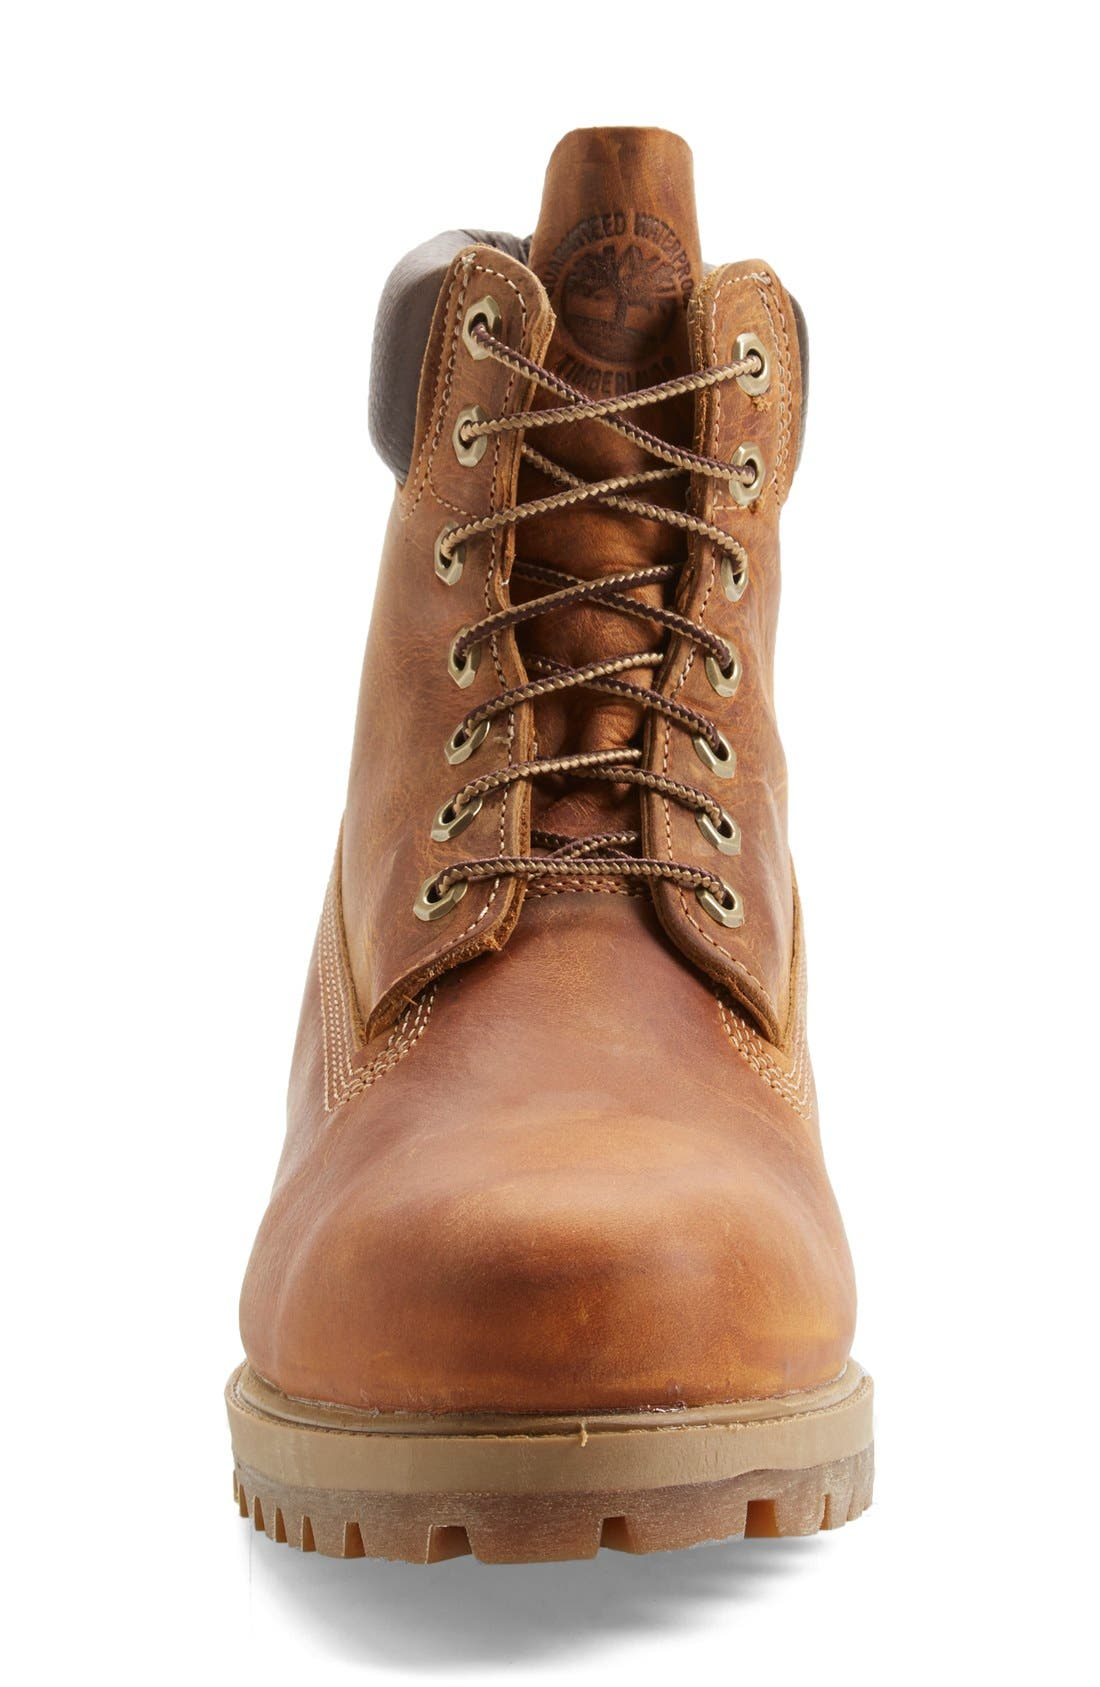 'Premium Heritage' Round Toe Boot,                             Alternate thumbnail 9, color,                             BURNT ORANGE OILED LEATHER